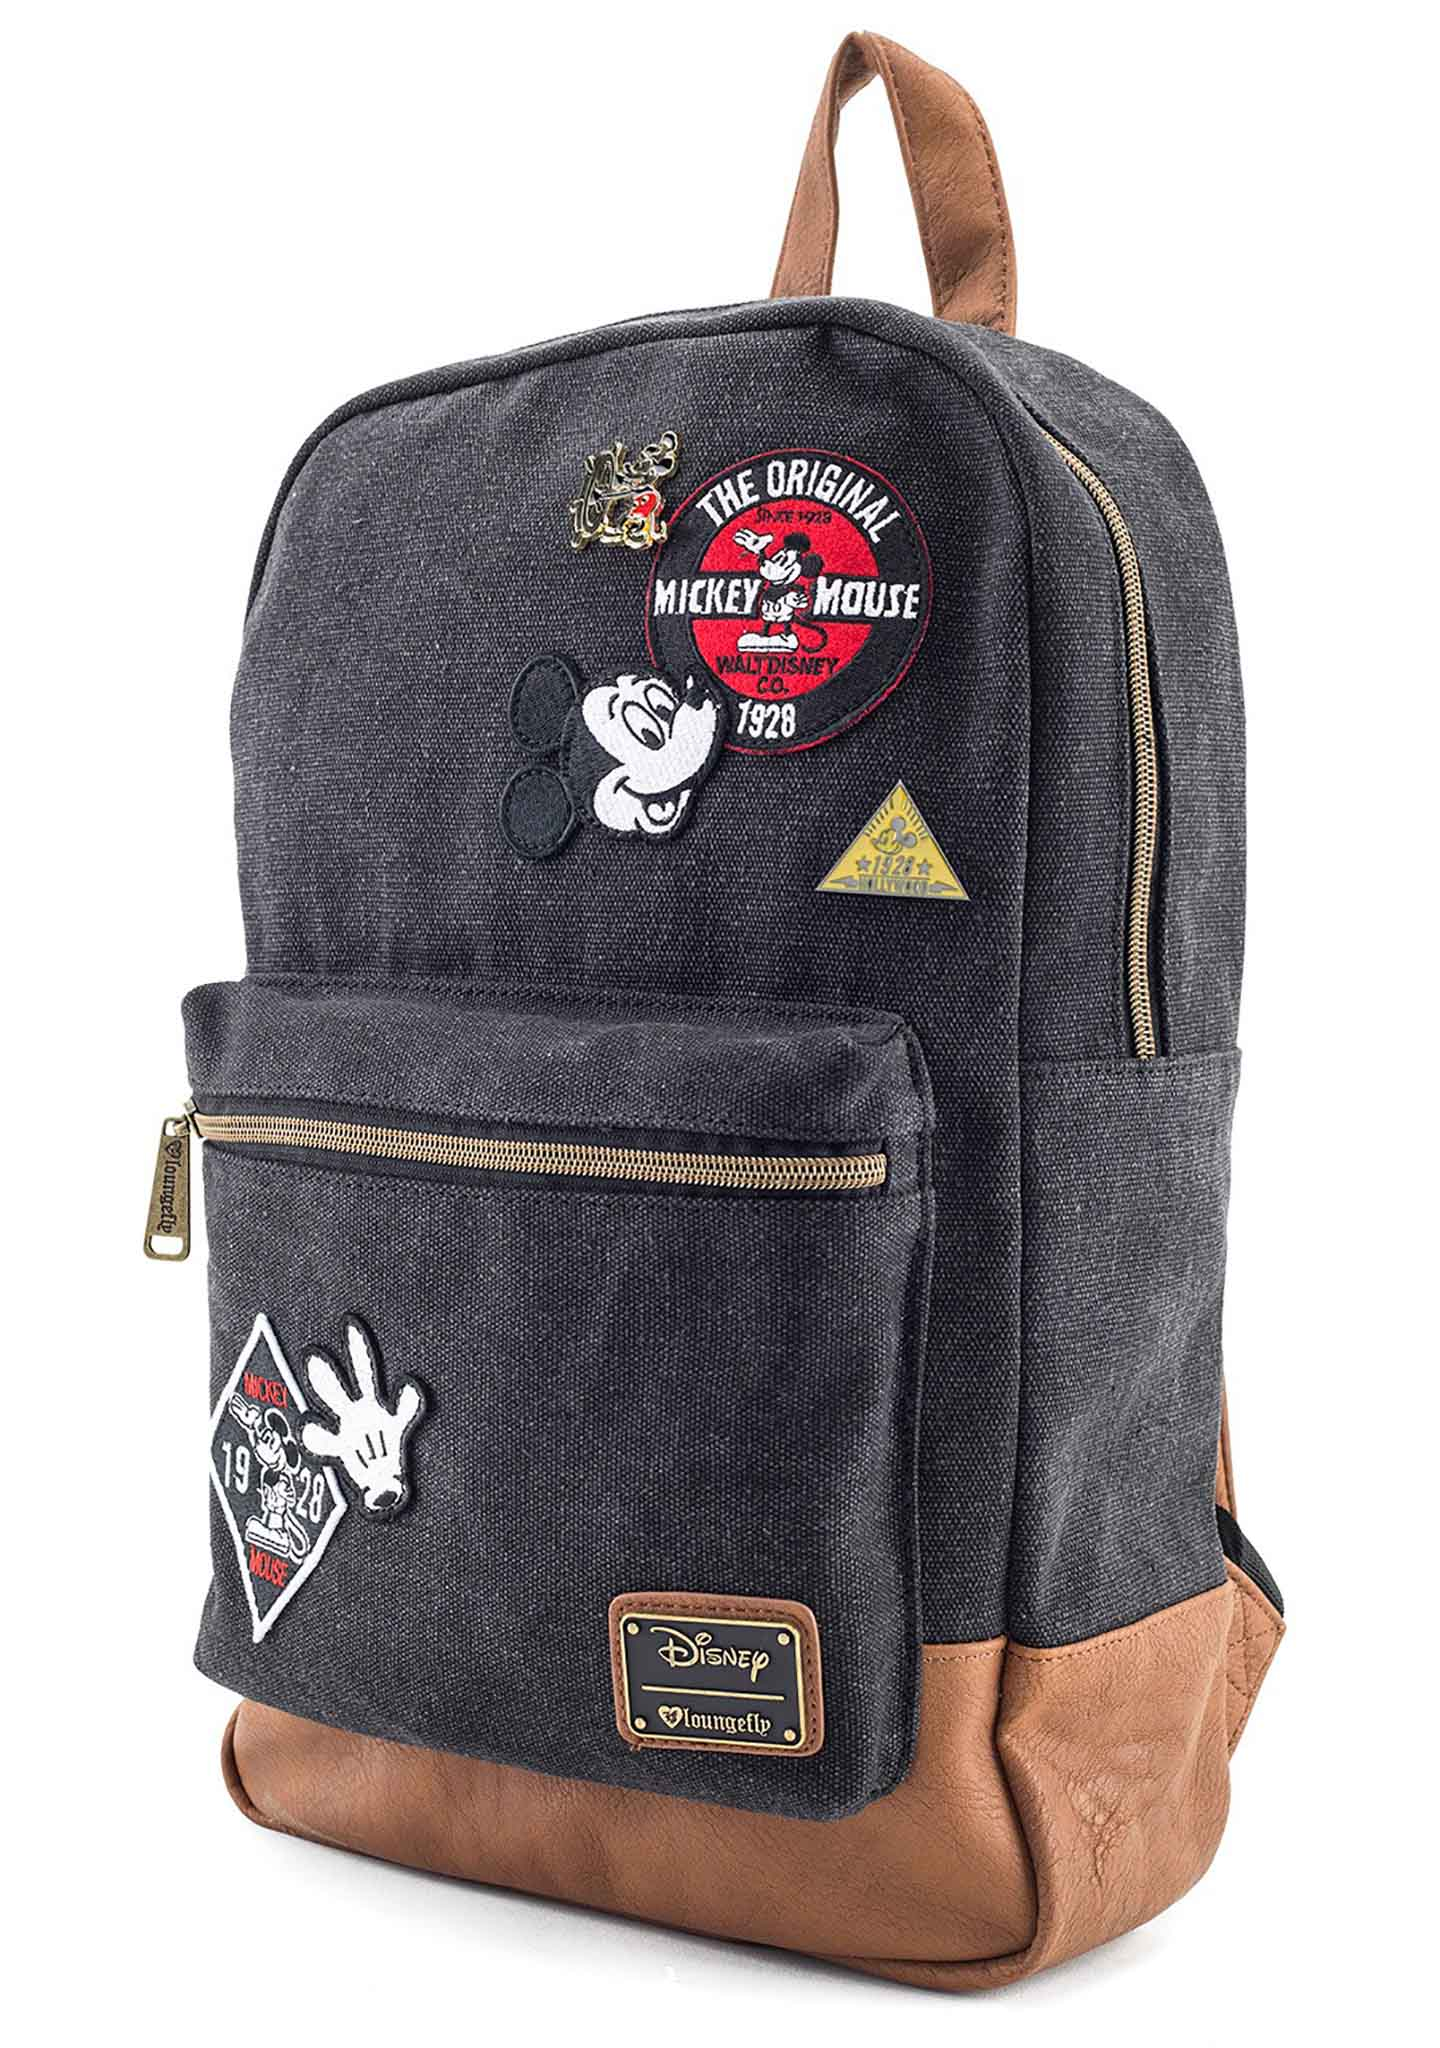 X Disney Mickey Patches Denim Backpack